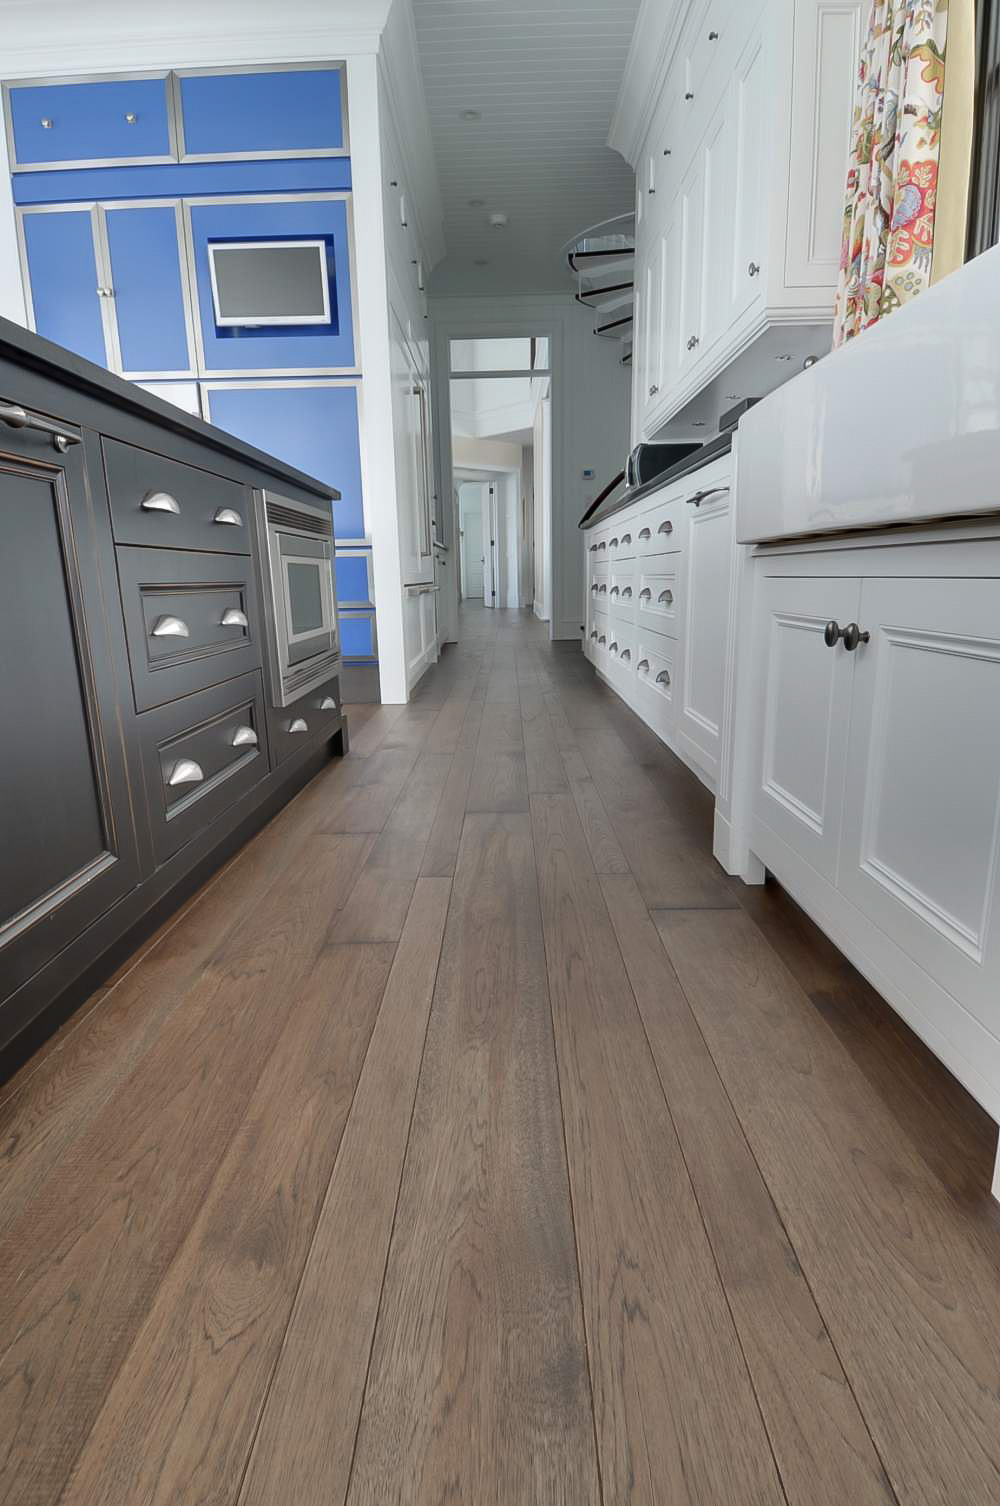 hickory kitchen hardwood floor-4.jpg